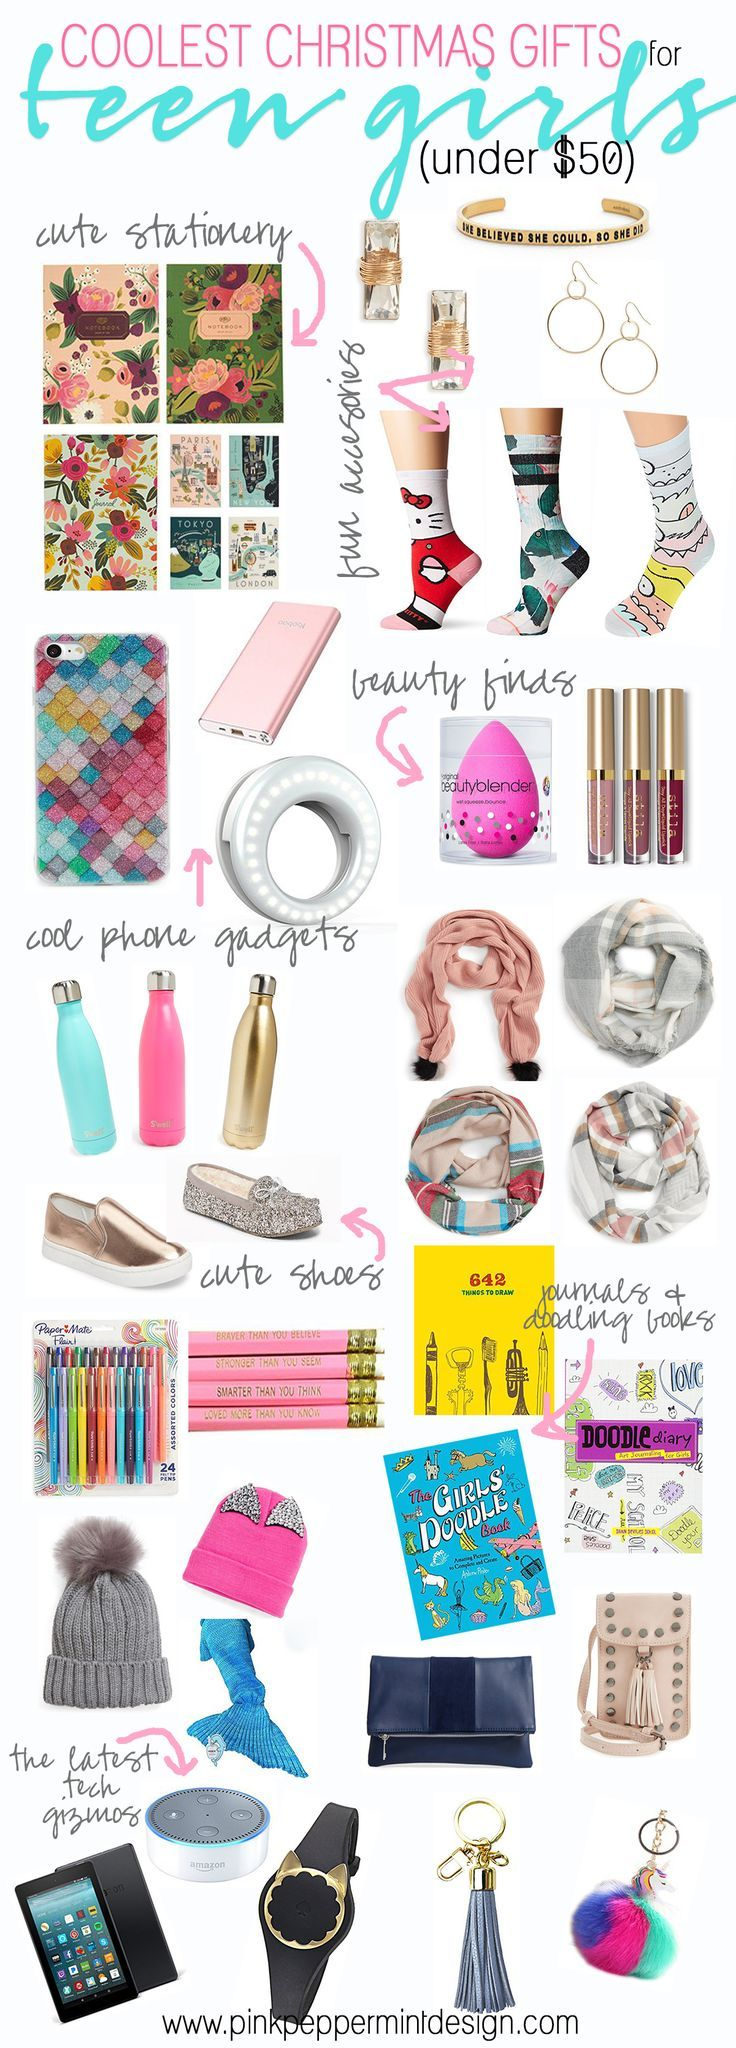 The Coolest Christmas Gifts for Teen and Tween Girls Under $50